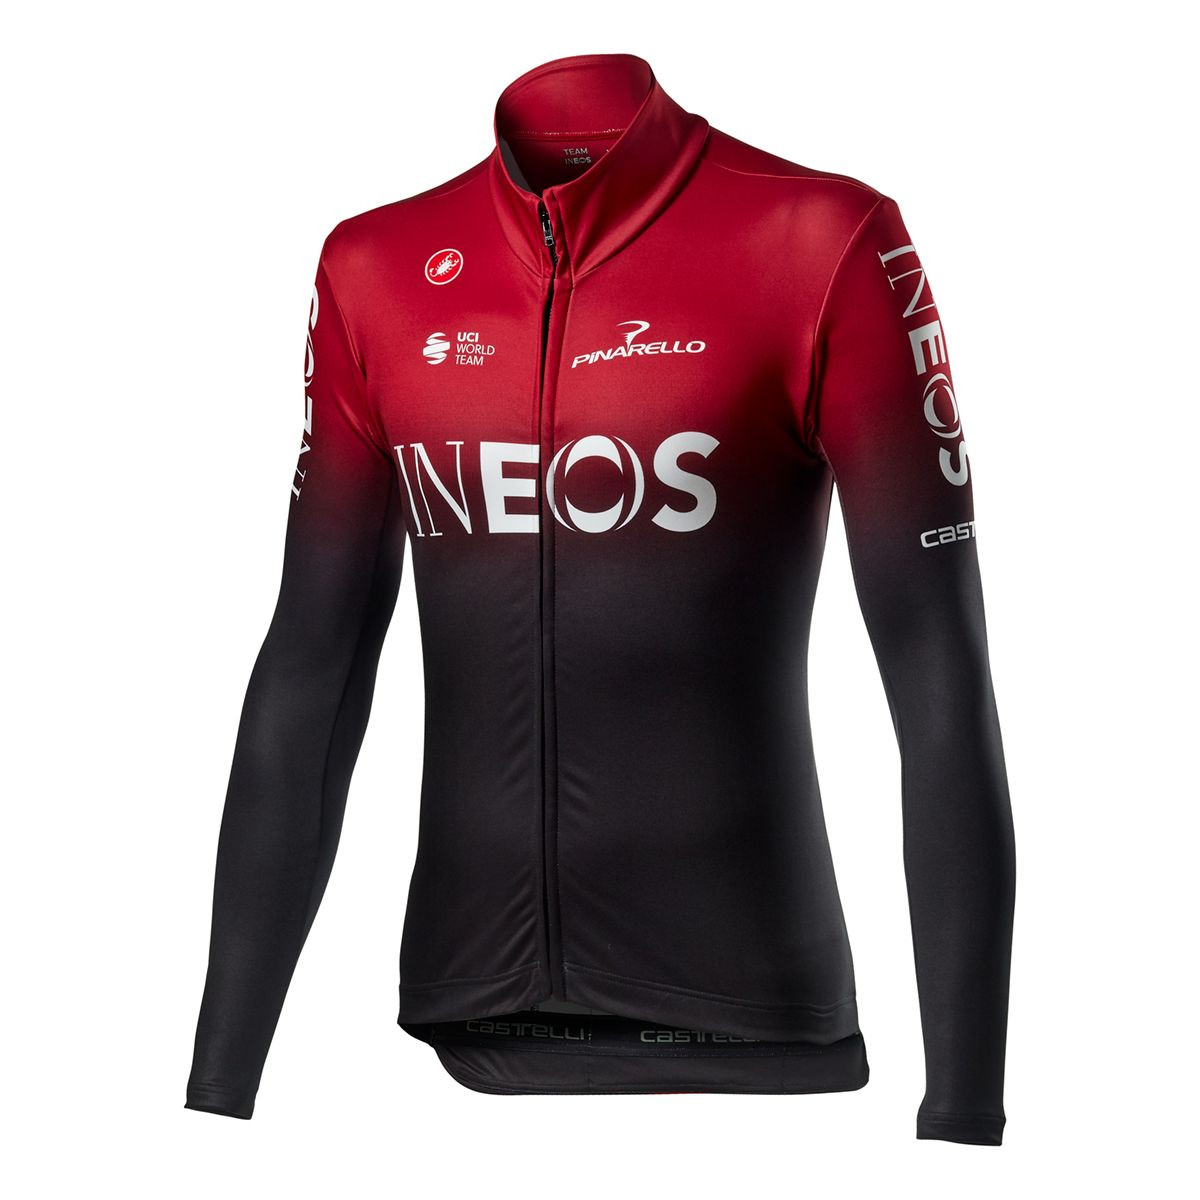 TEAM INEOS LS THERMAL JERSEY Thermo Fahrradtrikot